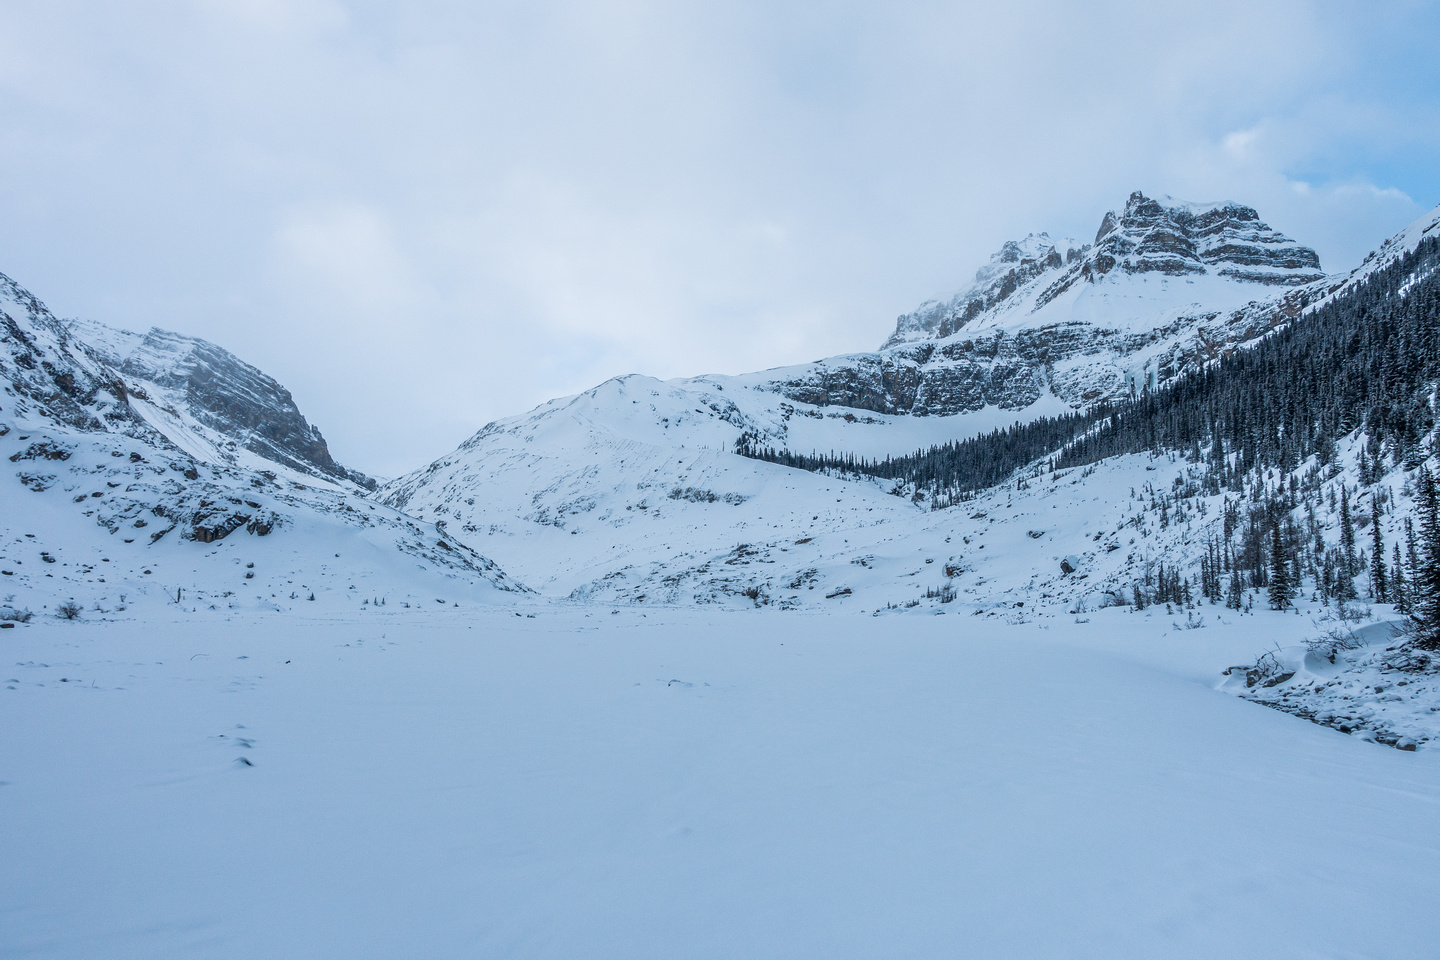 Through the narrows, looking ahead at the moraine (center) and our prize - Peyto Peak rises on the right.